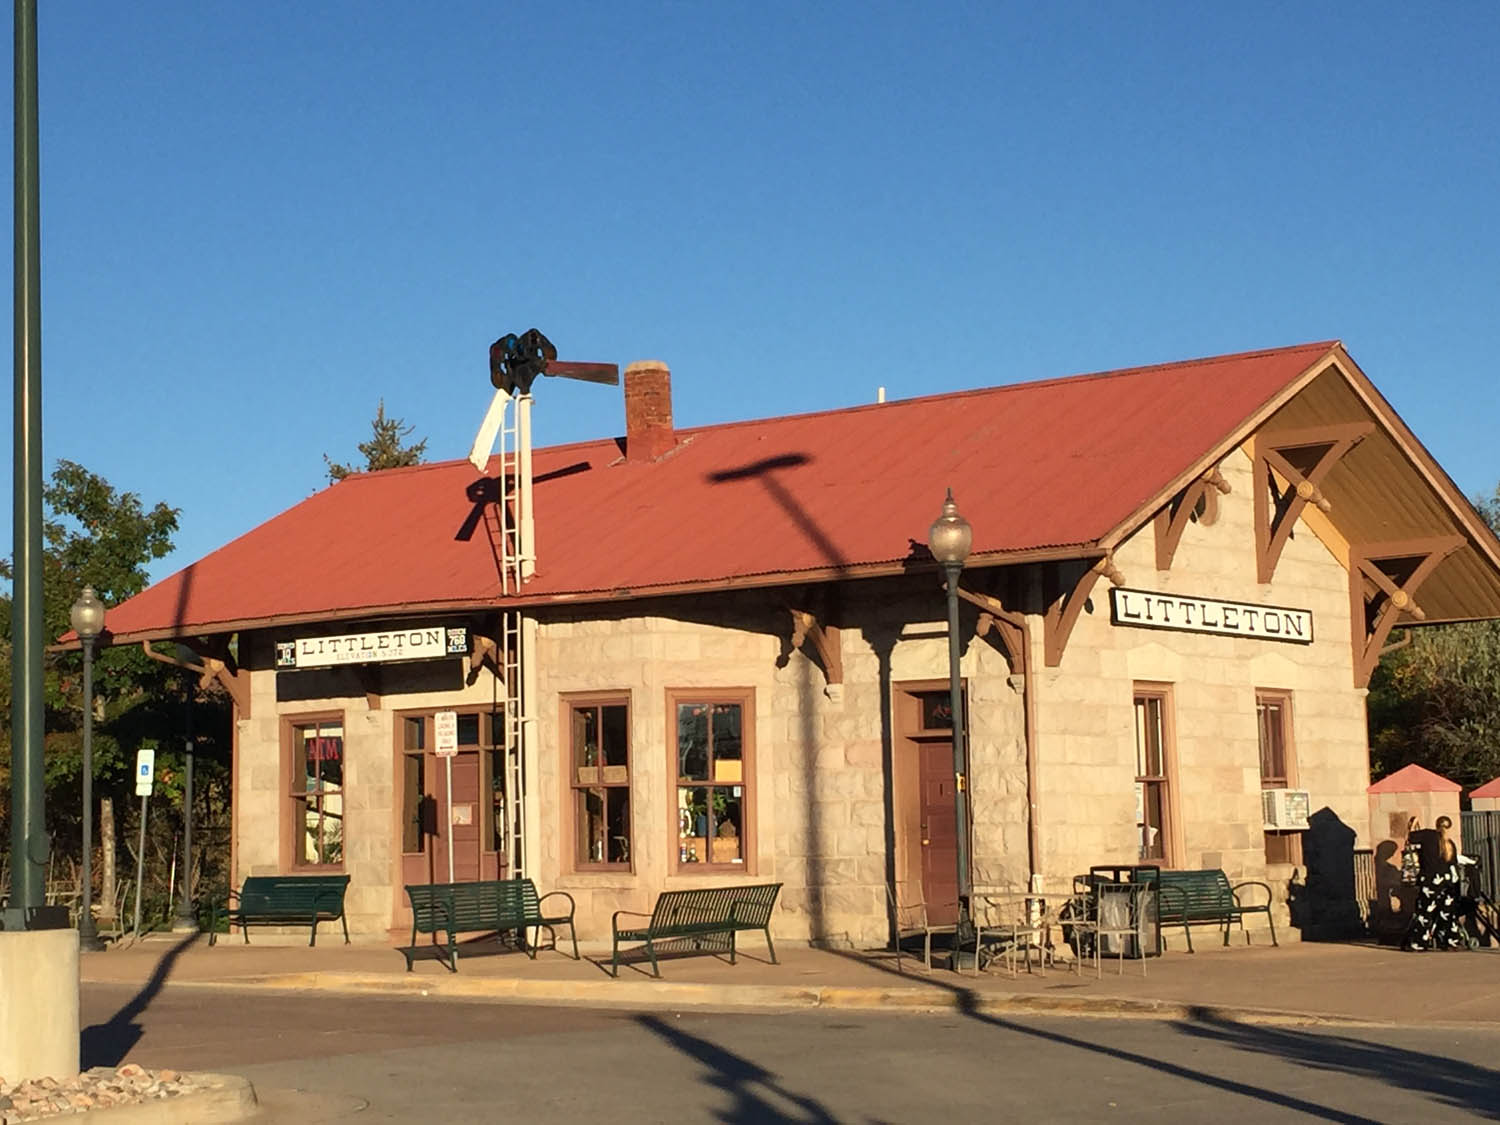 Old train station, now a light rail station, in historic old downtown Littleton, CO